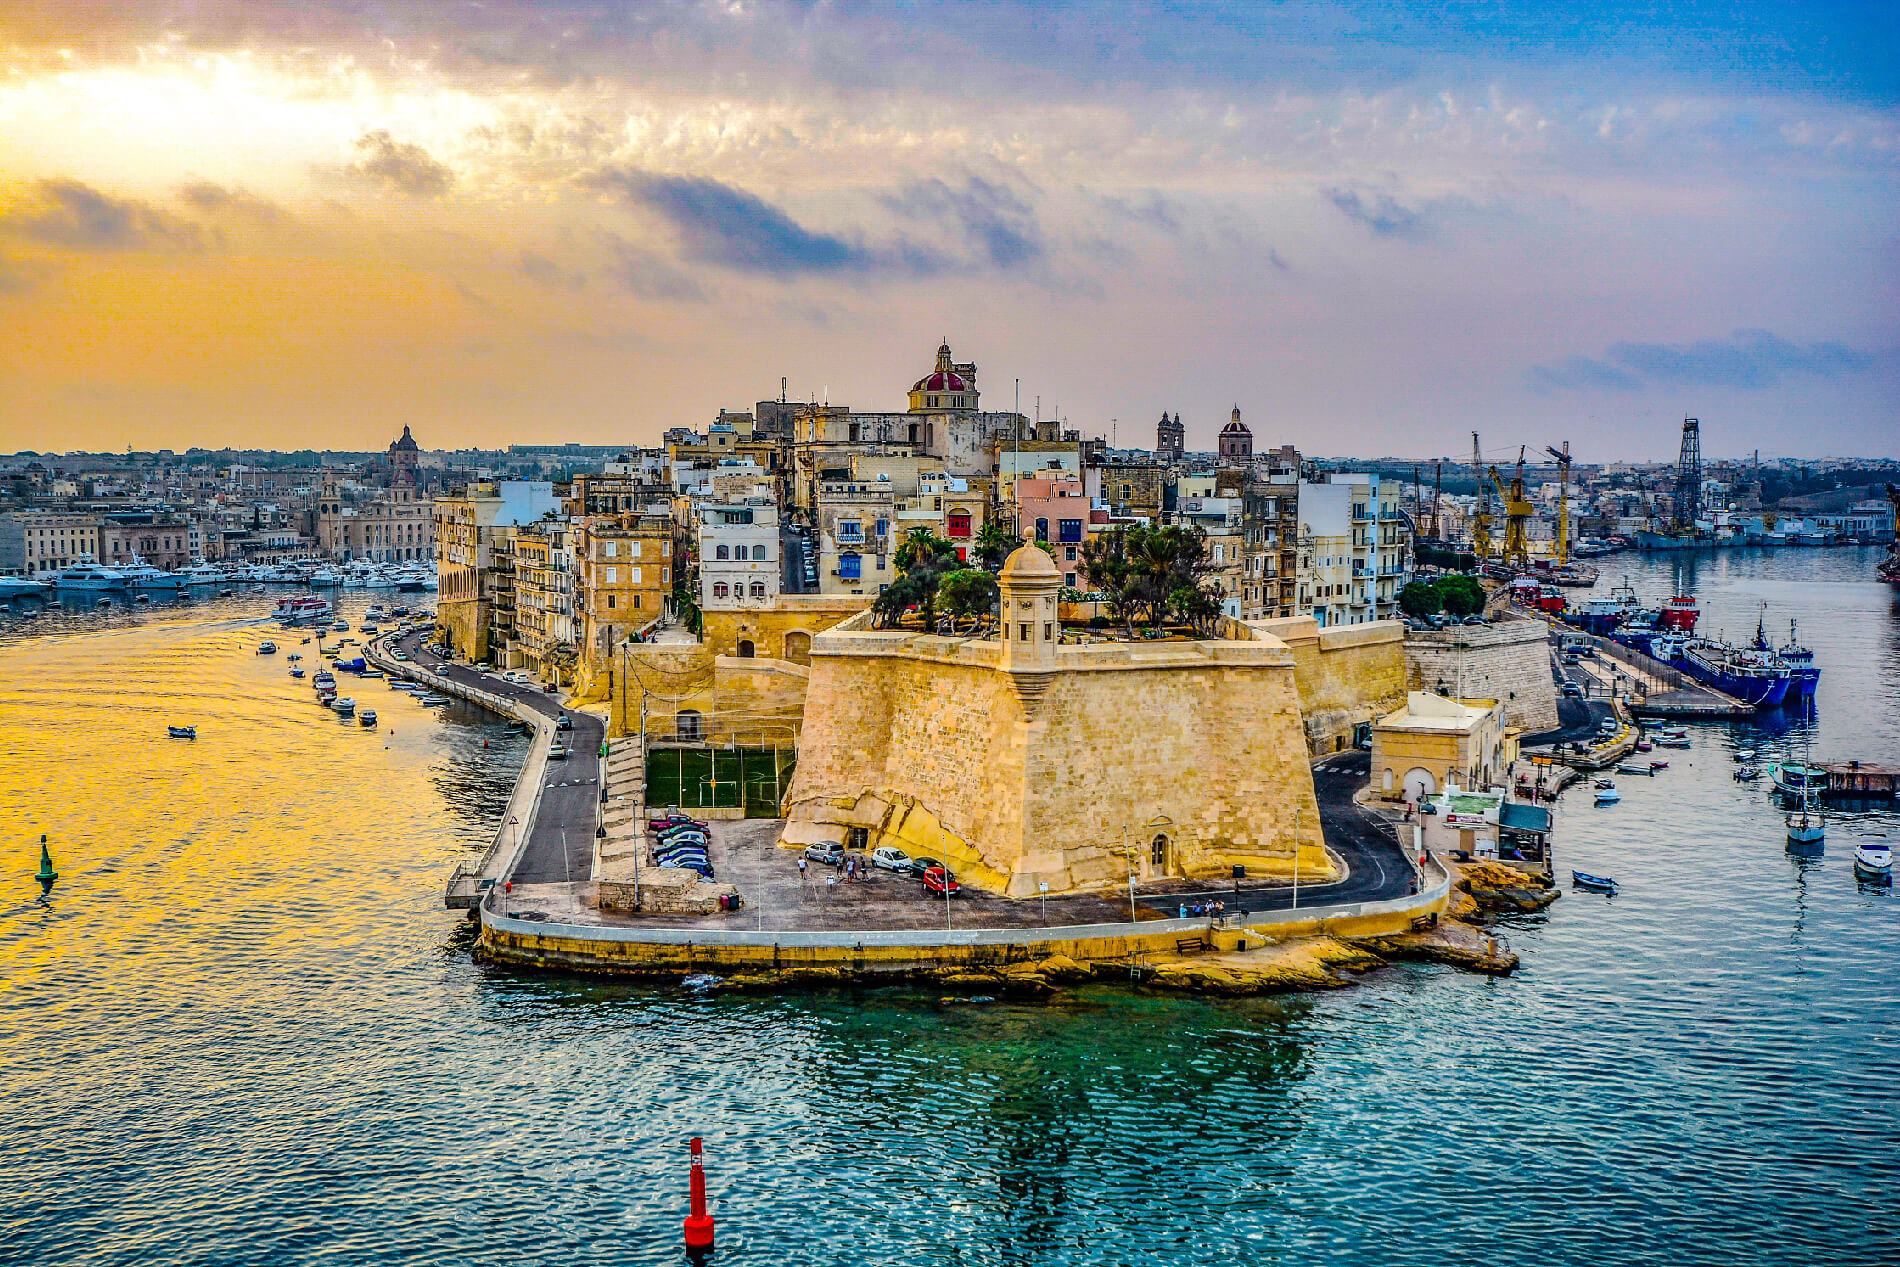 Malta as new centre for Islamic finance